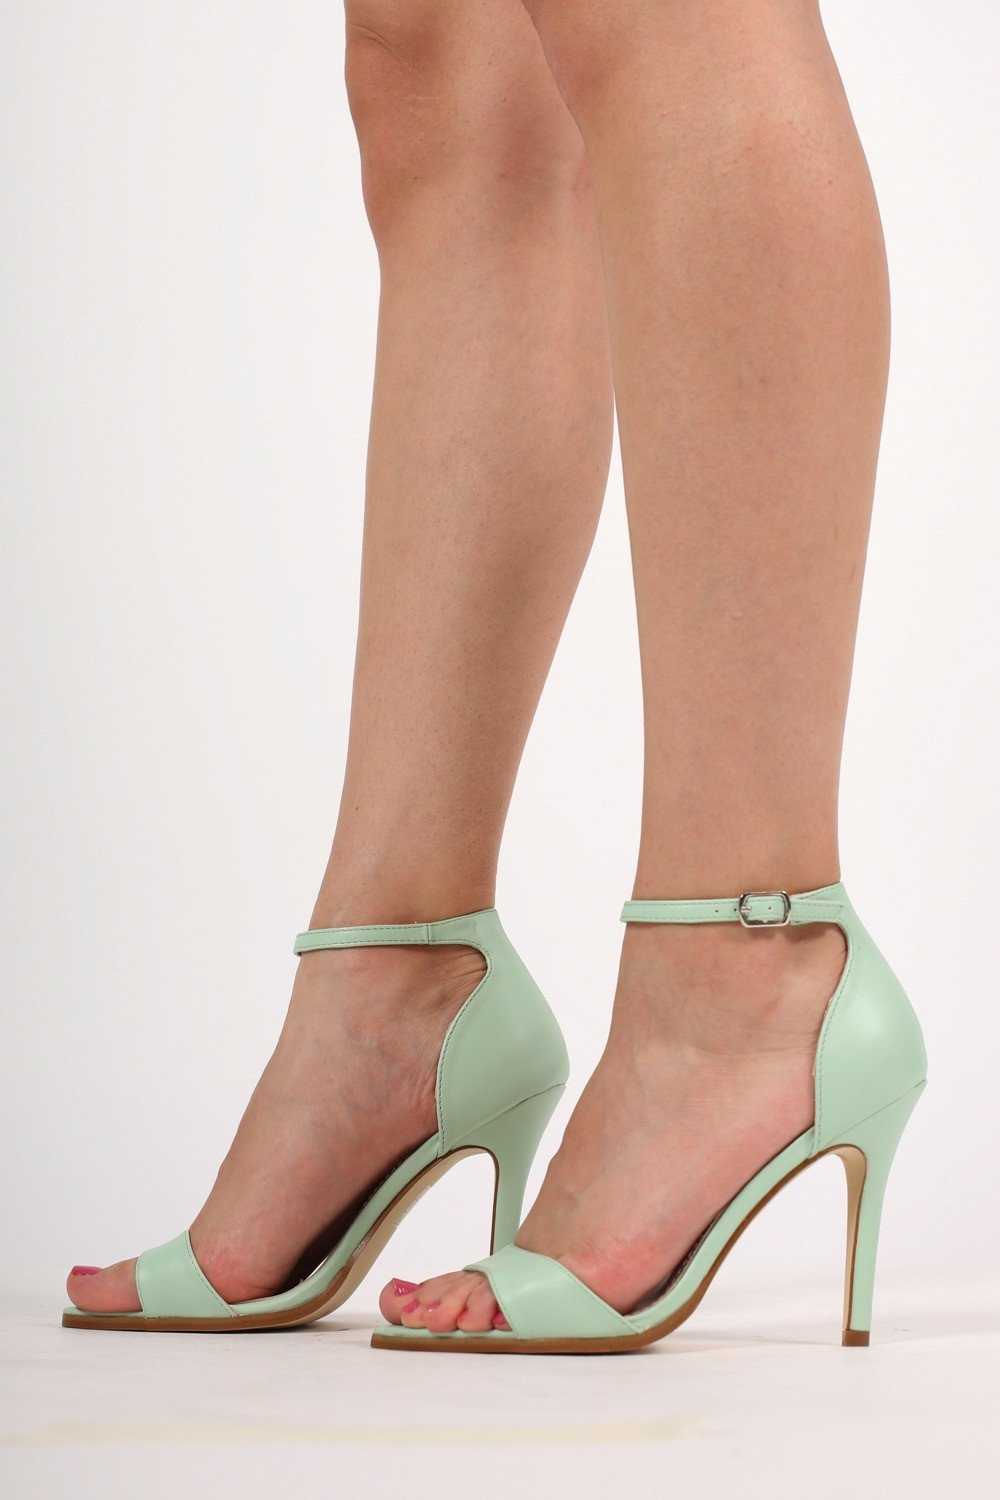 b551c360928d Maya Barely There Strappy High Heel Sandals in Mint Green MODEL SIDE